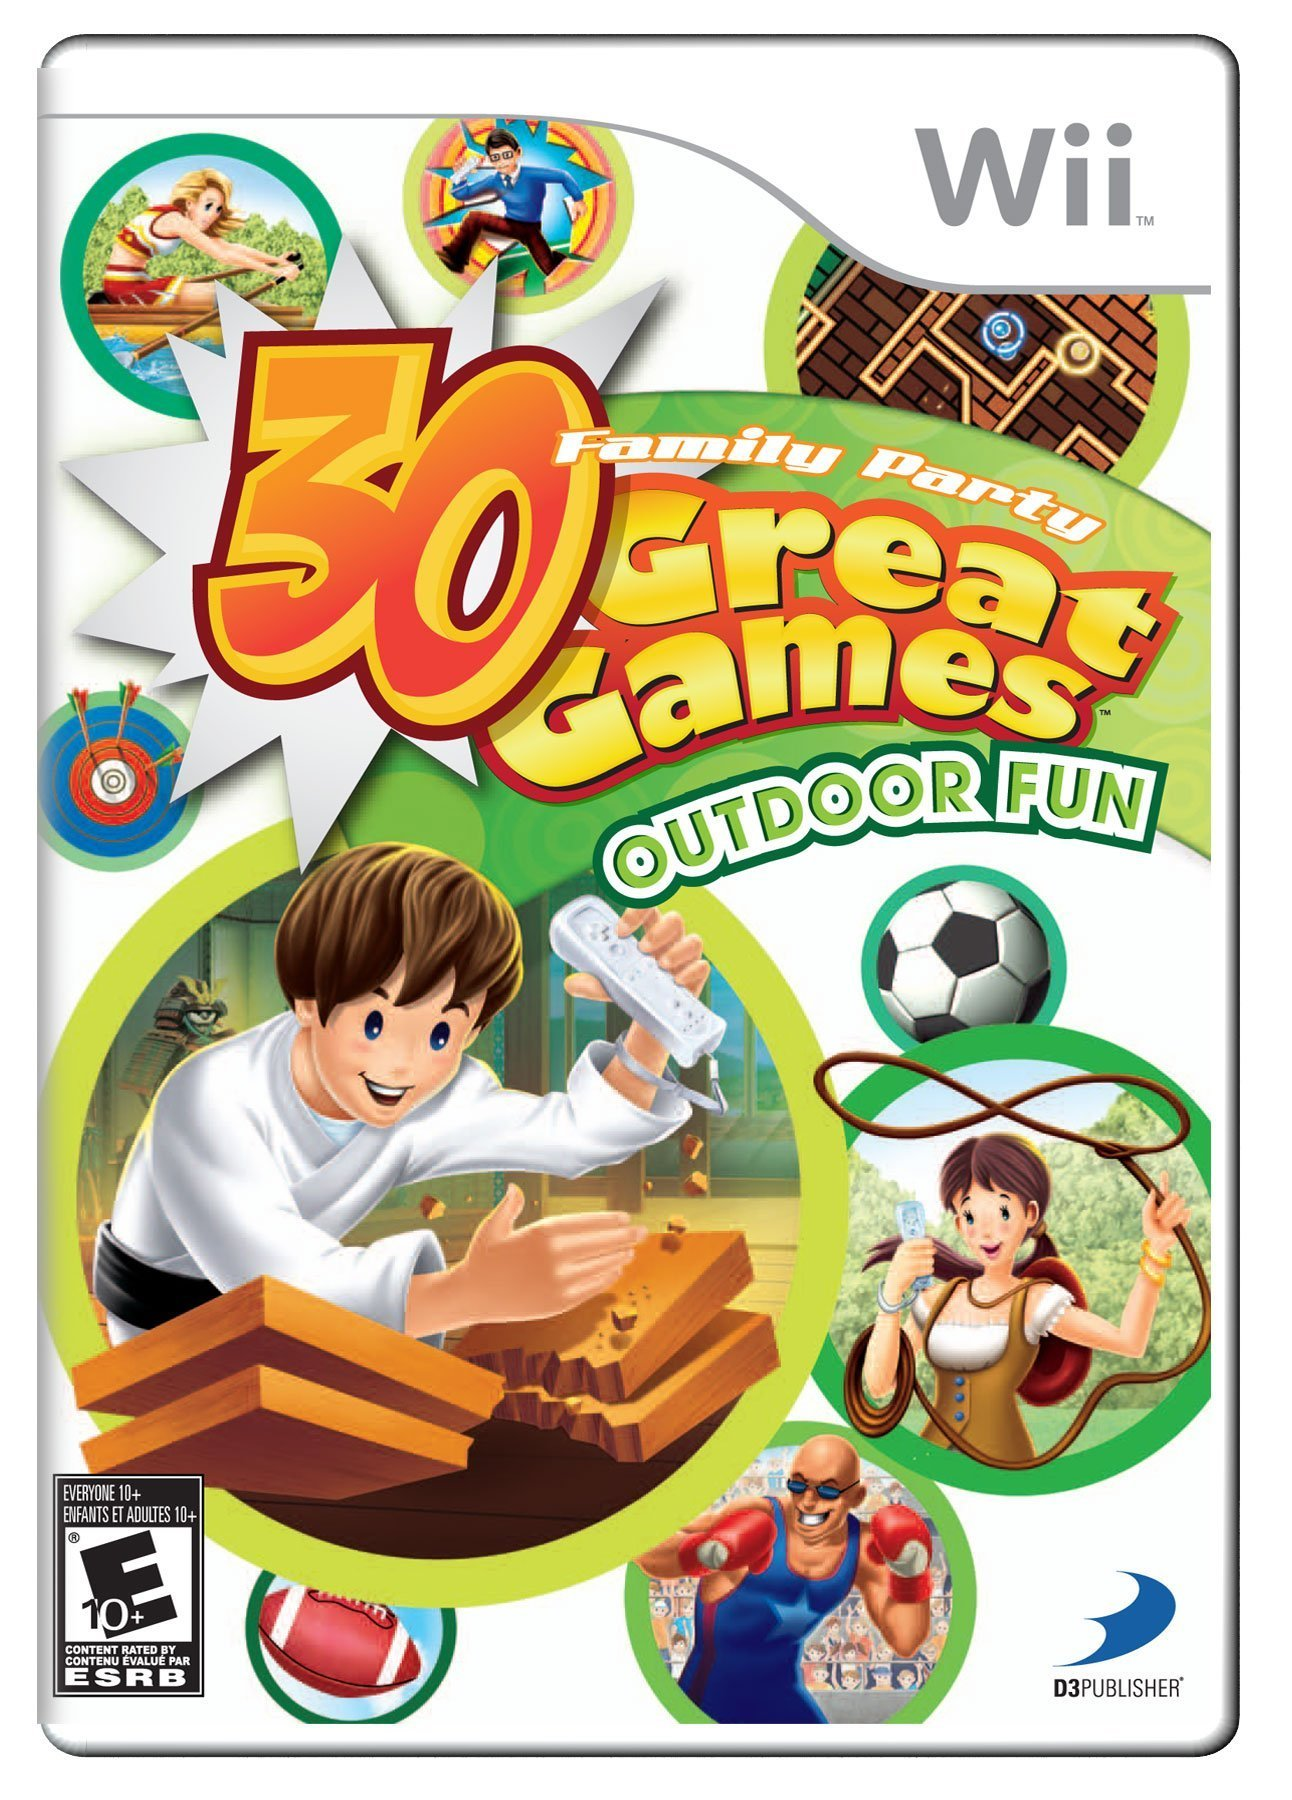 Amazon price history for 30 Family Party Great Games Outdoor Fun